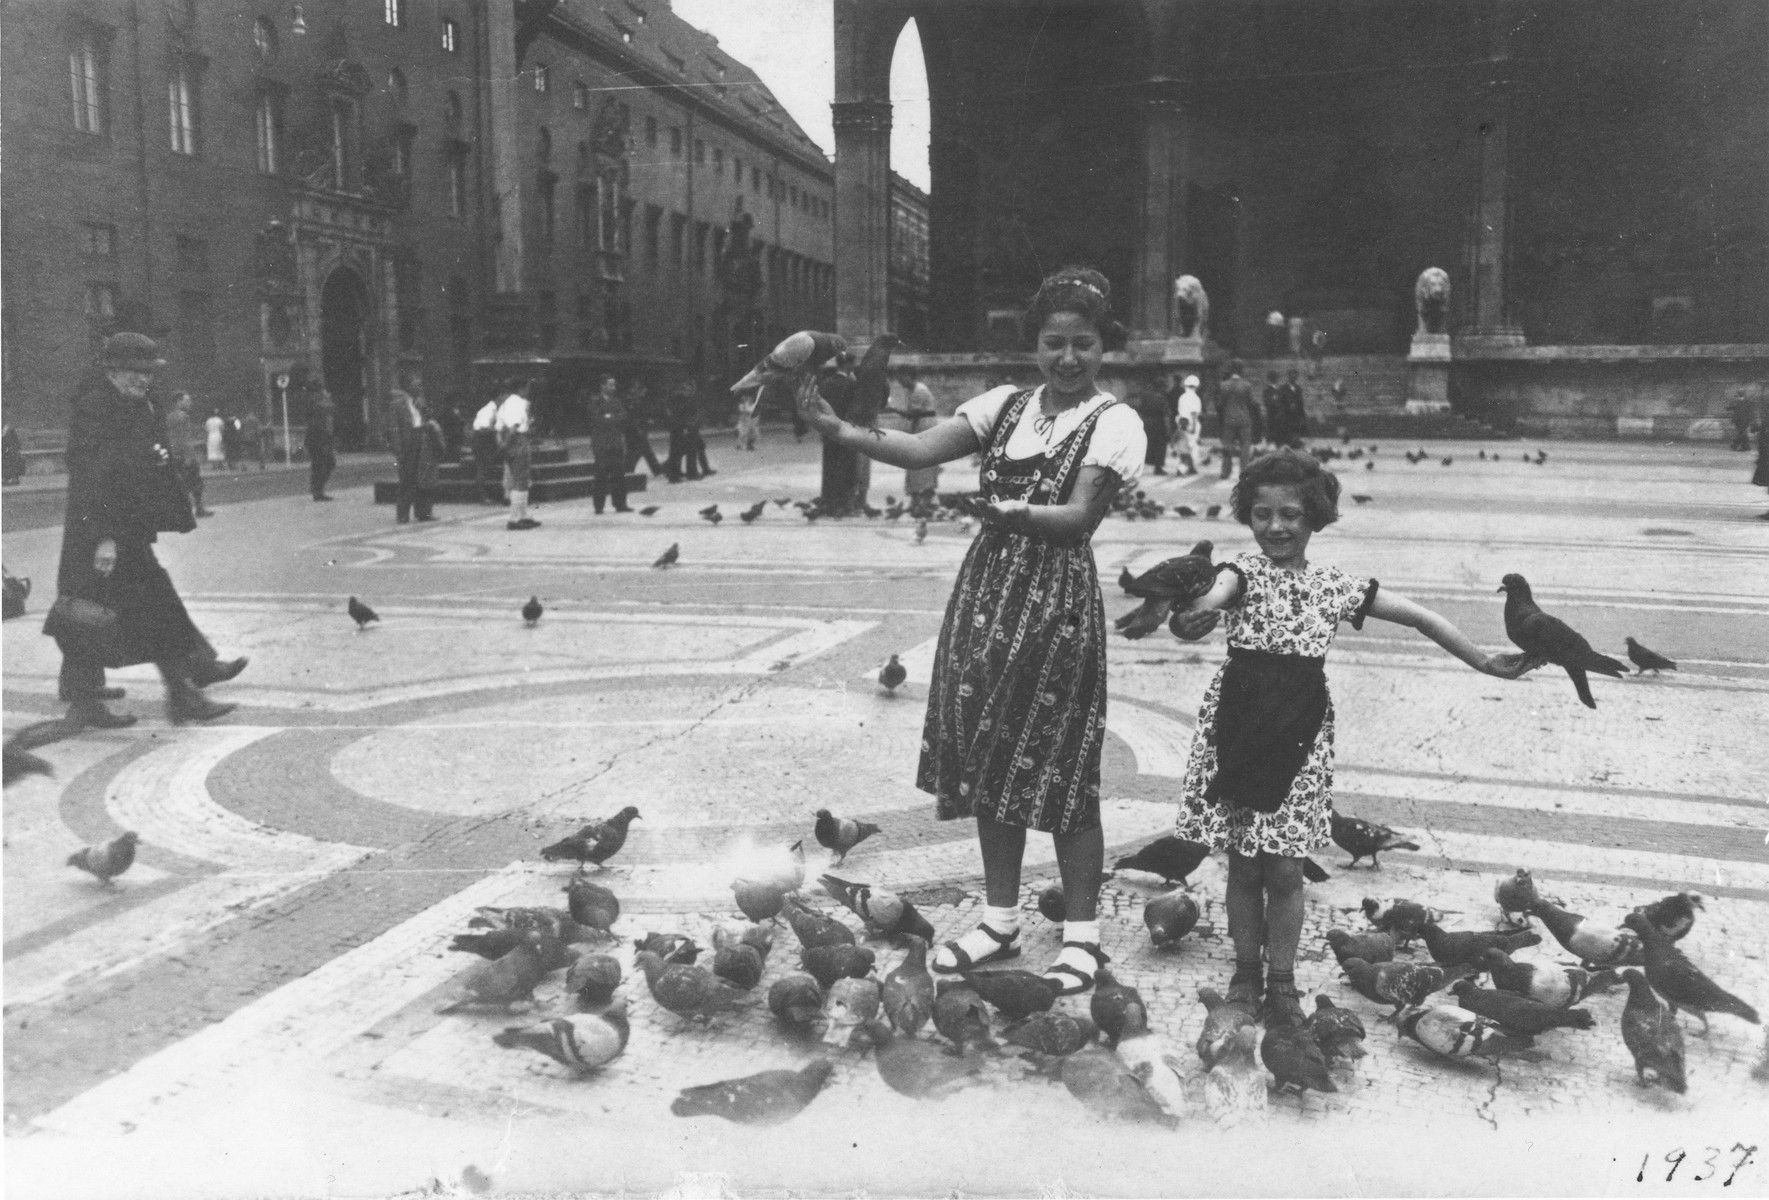 Berta and Inge Engelhard play with the pigeons in front of the Feldherrenhalle in Munich.